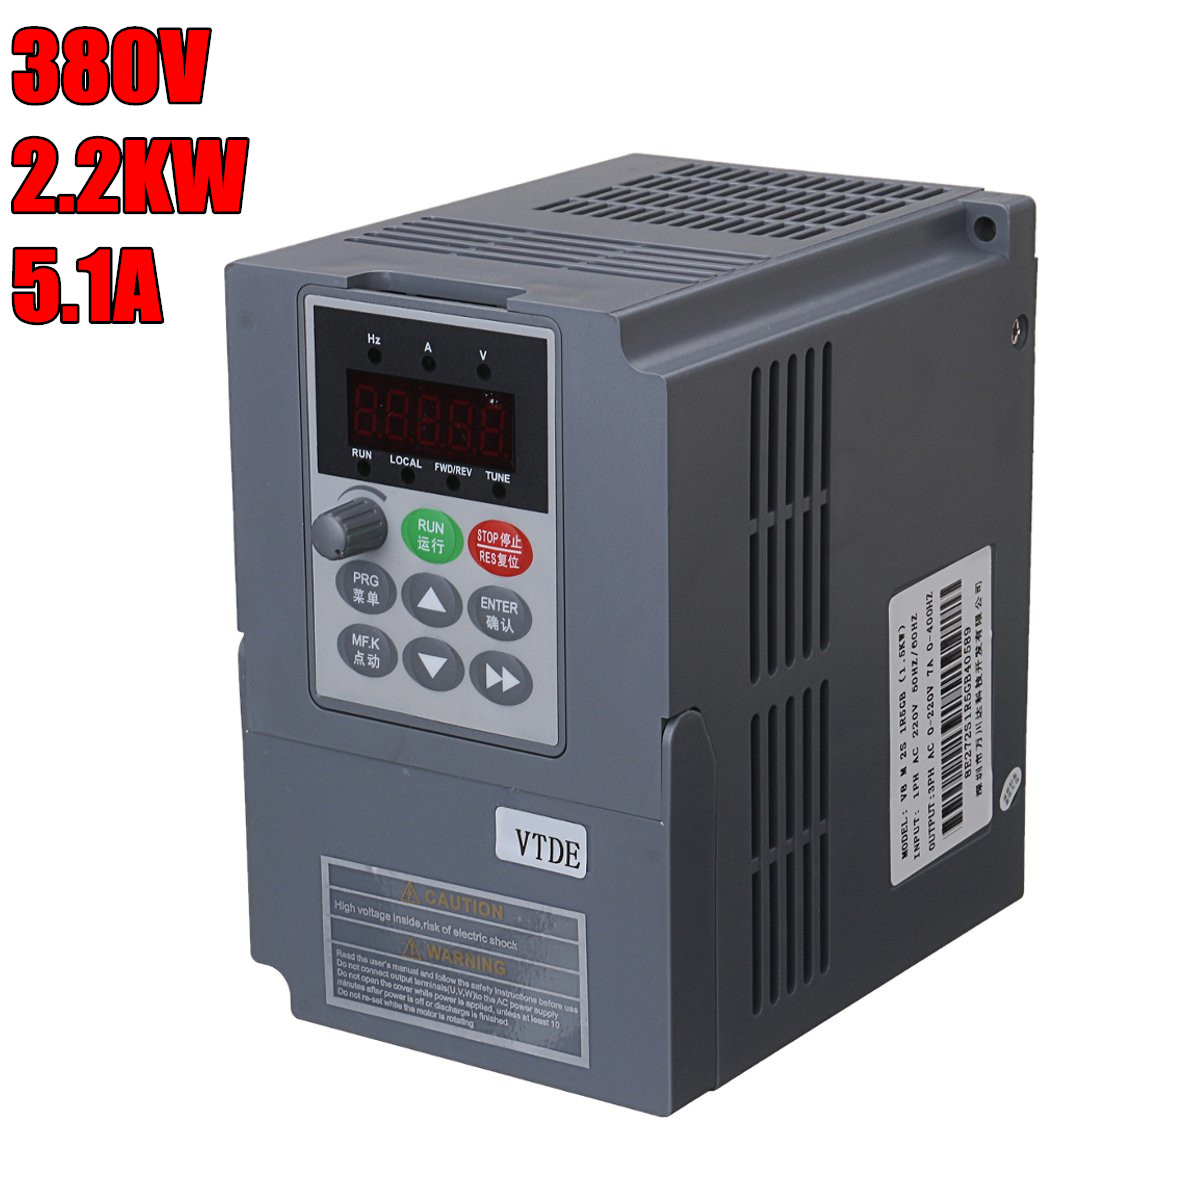 цена на CNC Spindle motor speed control 380v 2.2kw VFD Variable Frequency Drive VFD 3PH Input 3PH frequency Drive inverter for motor